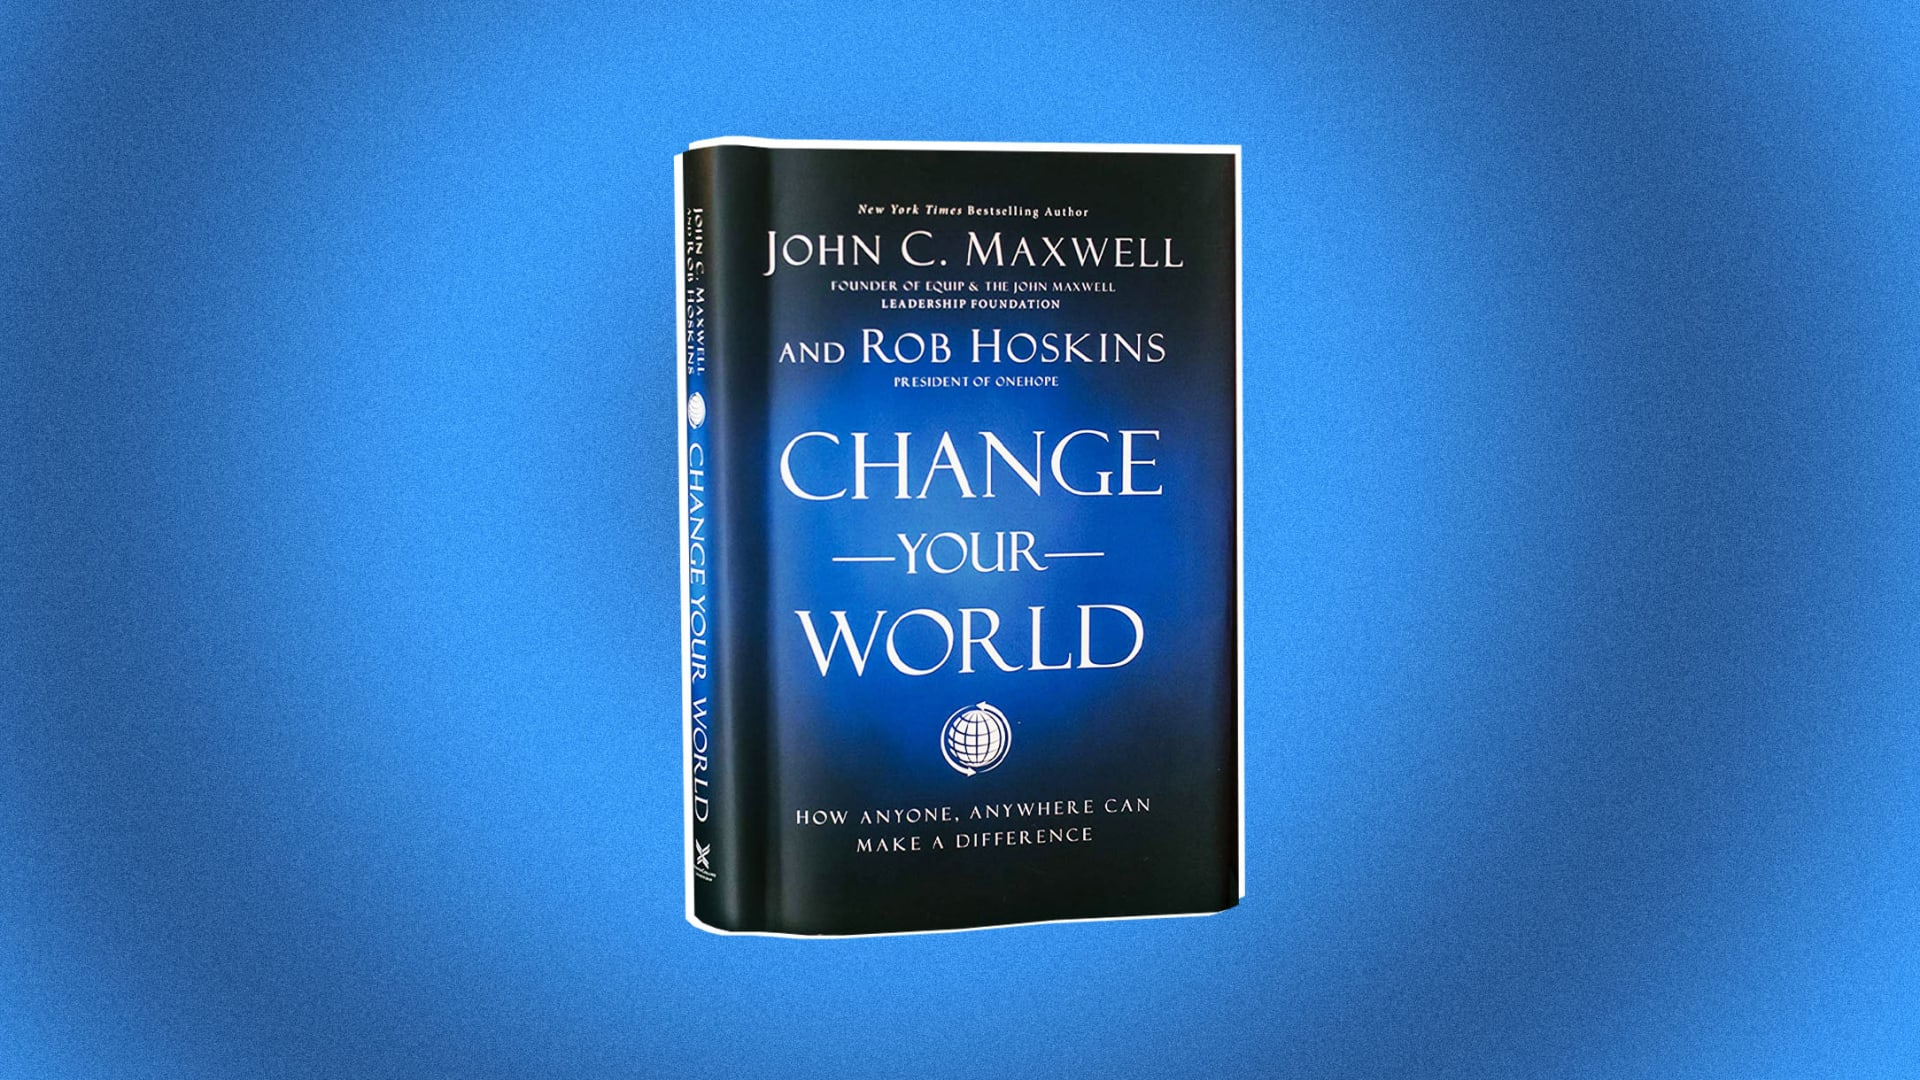 John C. Maxwell Says You Can Increase Your Level of Success by Making 3 Simple Choices